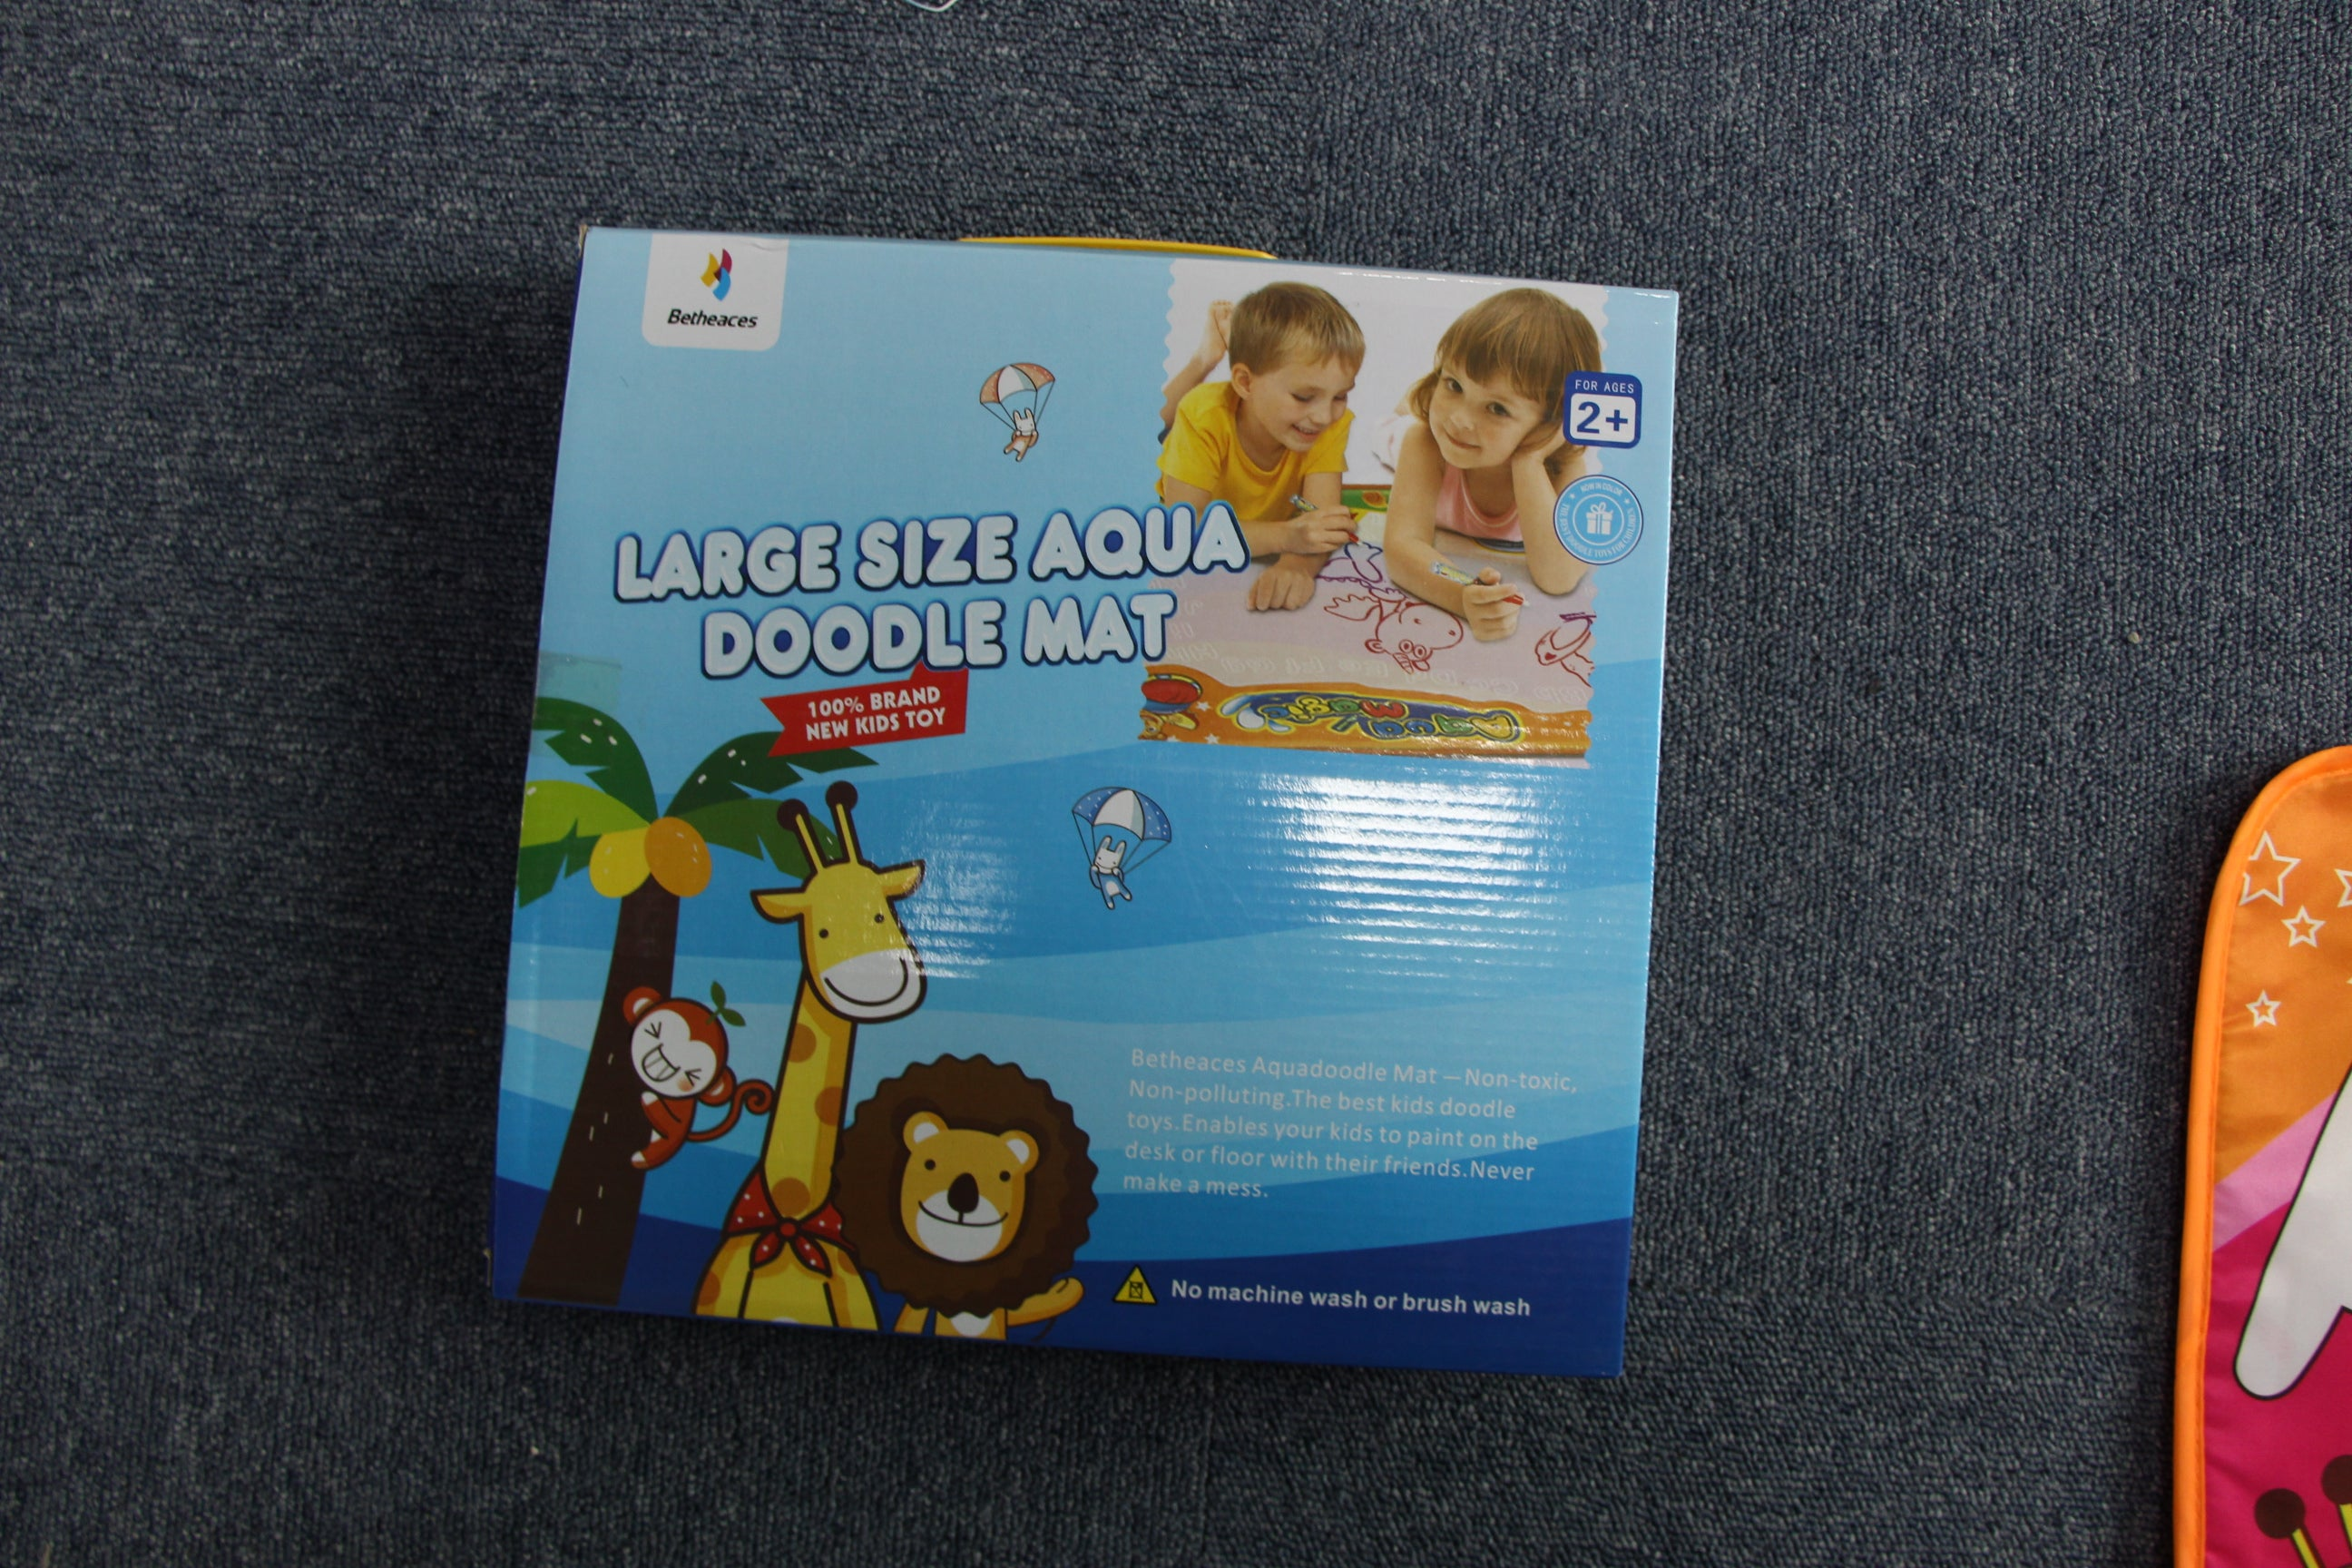 Betheaces water play mat is a great toy for kids